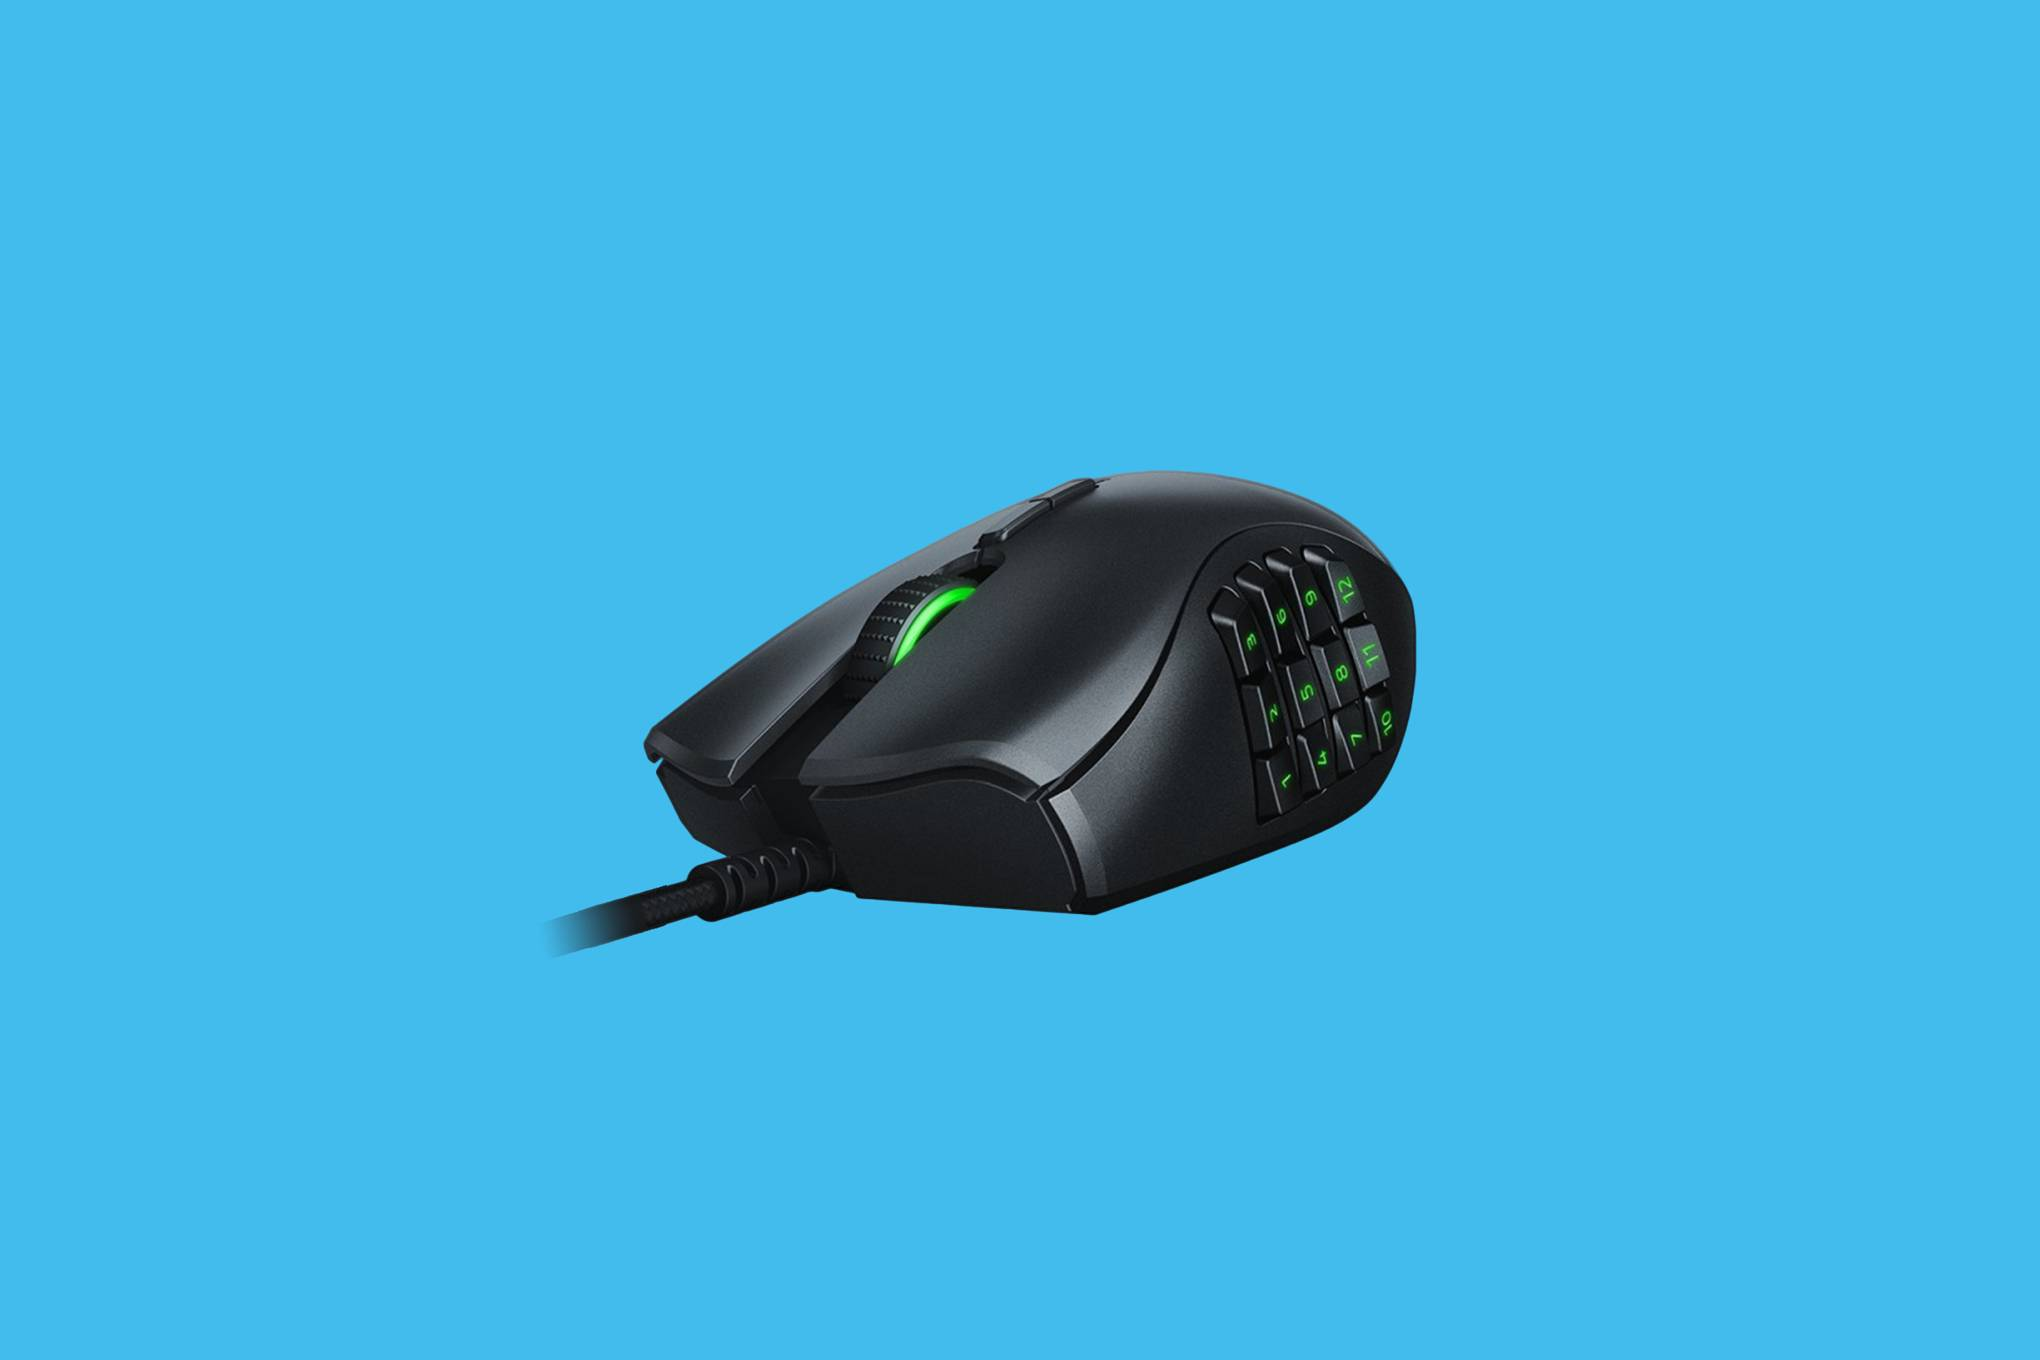 The Best Gaming Mouse For Any Budget In 2020 Wired Uk